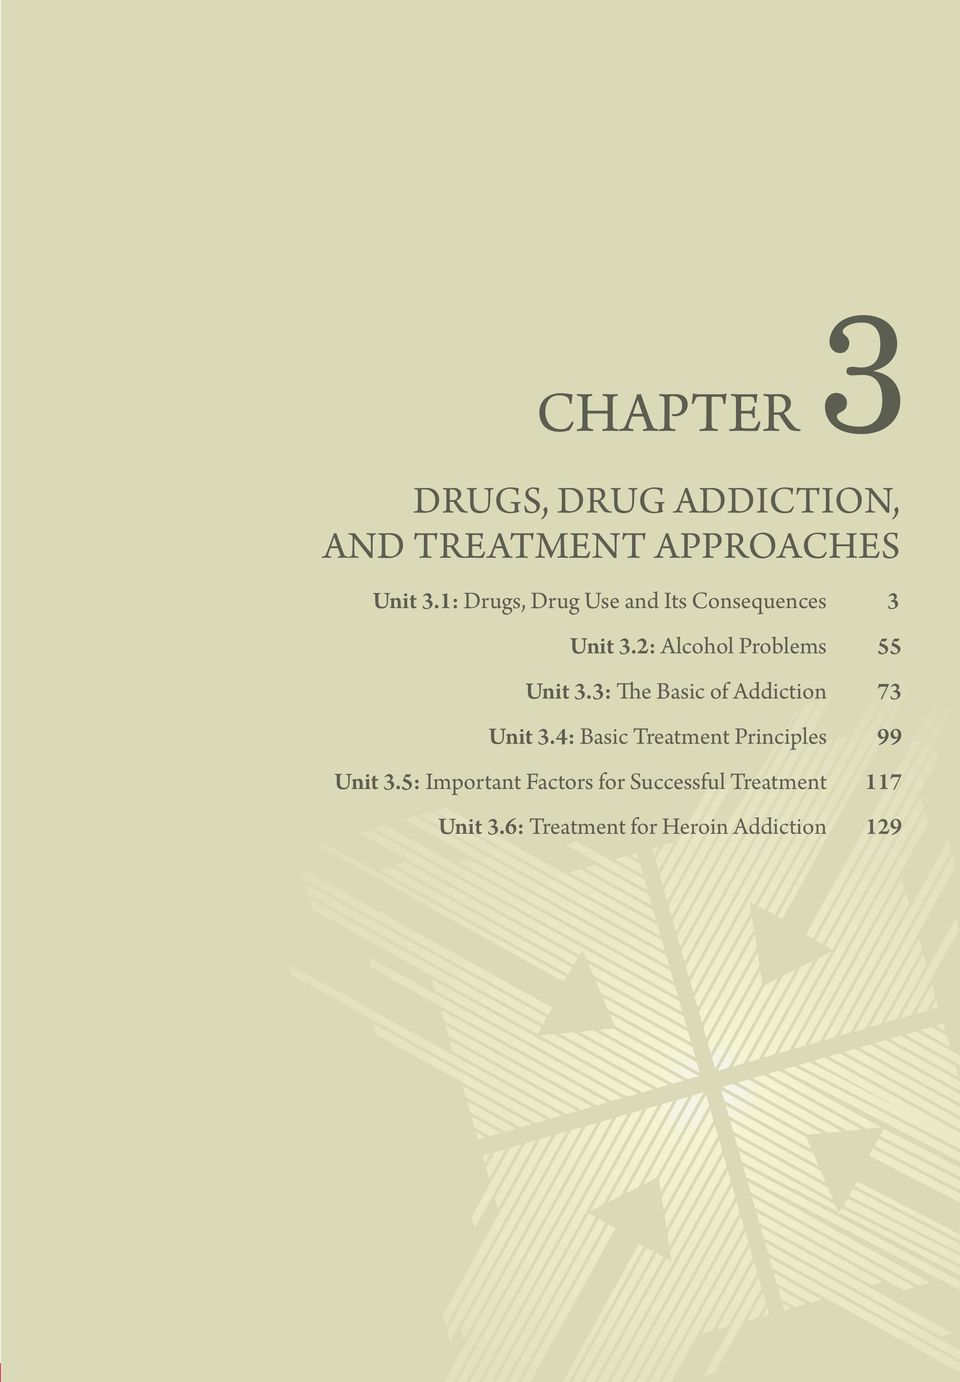 3: The Basic of Addiction 73 Unit 3.4: Basic Treatment Principles 99 Unit 3.